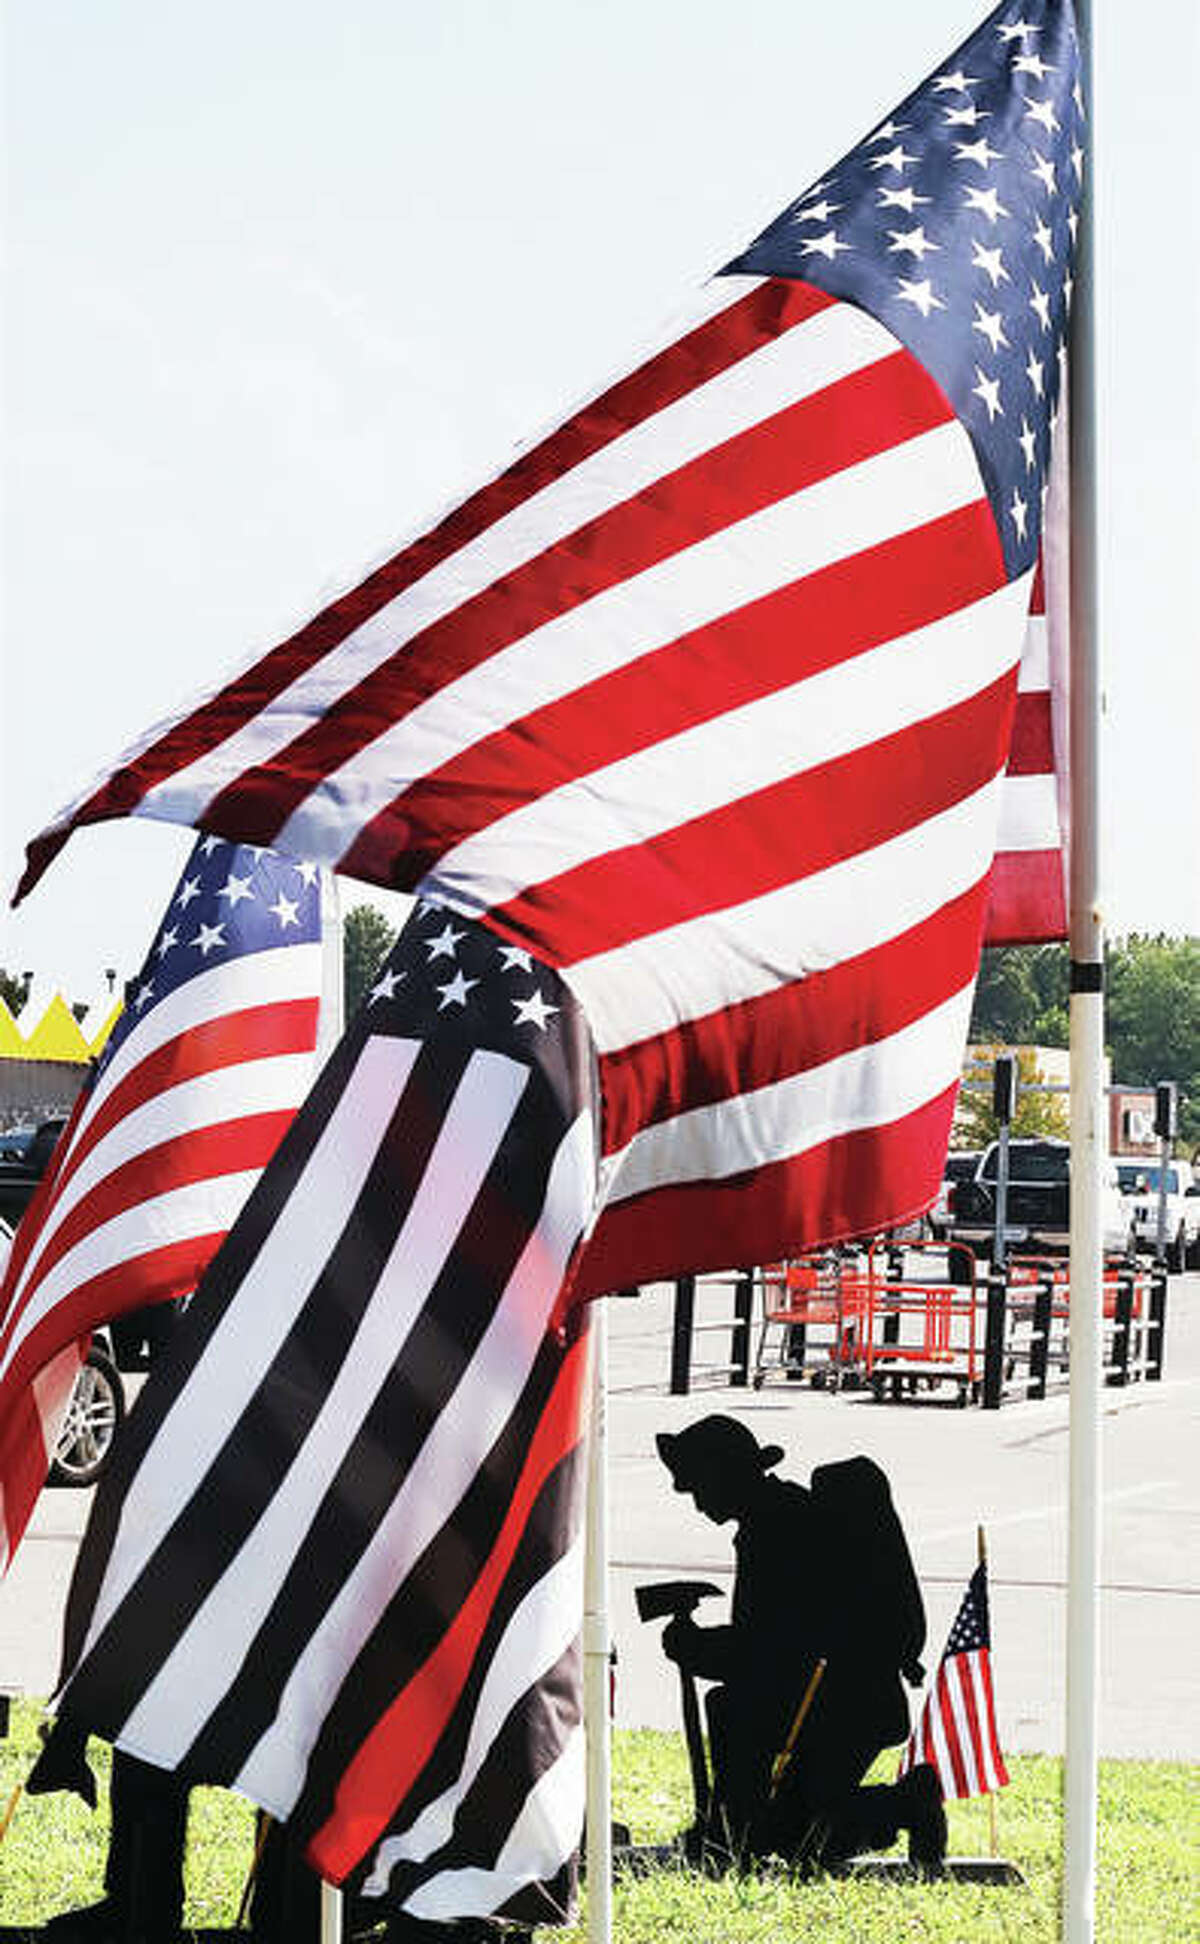 A display of flags and silhouettes is setup at the edge of the parking lot at the Alton Home Depot to honor those who died in the terrorist attacks on the United States 19 years ago Friday. Of the 2,977 people who died in the three attacks, 343 were firefighters.